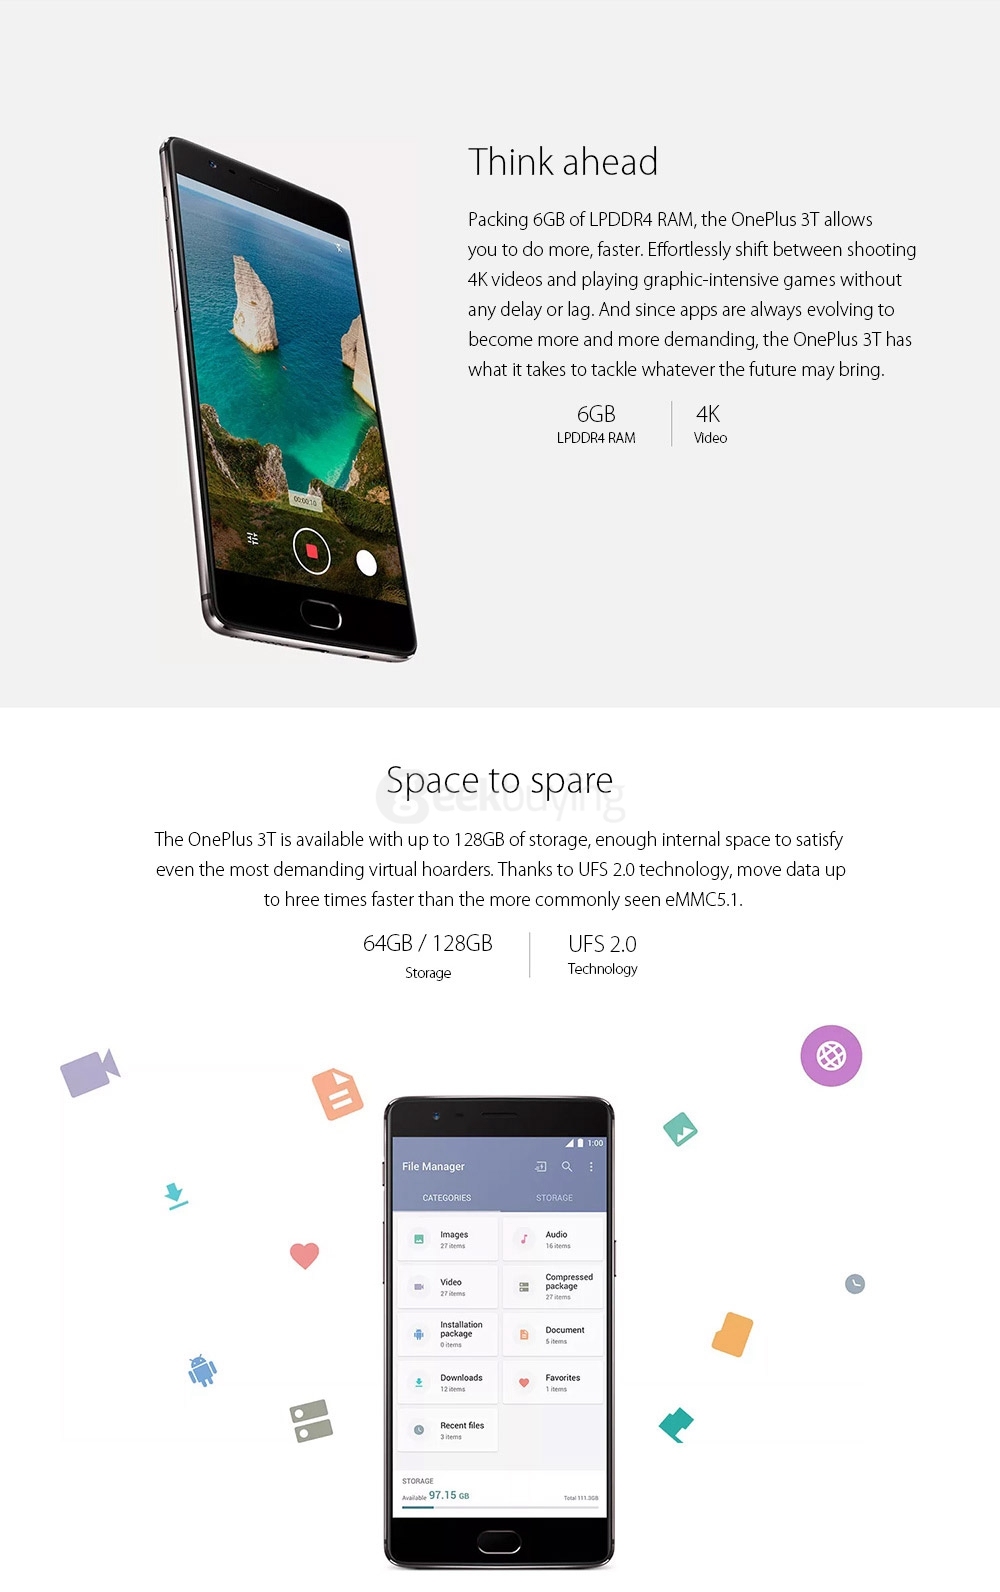 [HK Stock][EU Version]ONEPLUS 3T(A3003) 5.5inch AMOLED FHD Oxygen OS Smartphone Qualcomm Snapdragon 821 2.35GHz Quad Core 6GB 64GB 16.0MP+16.0MP Dash Charge Touch ID NFC Type-C - Gunmetal